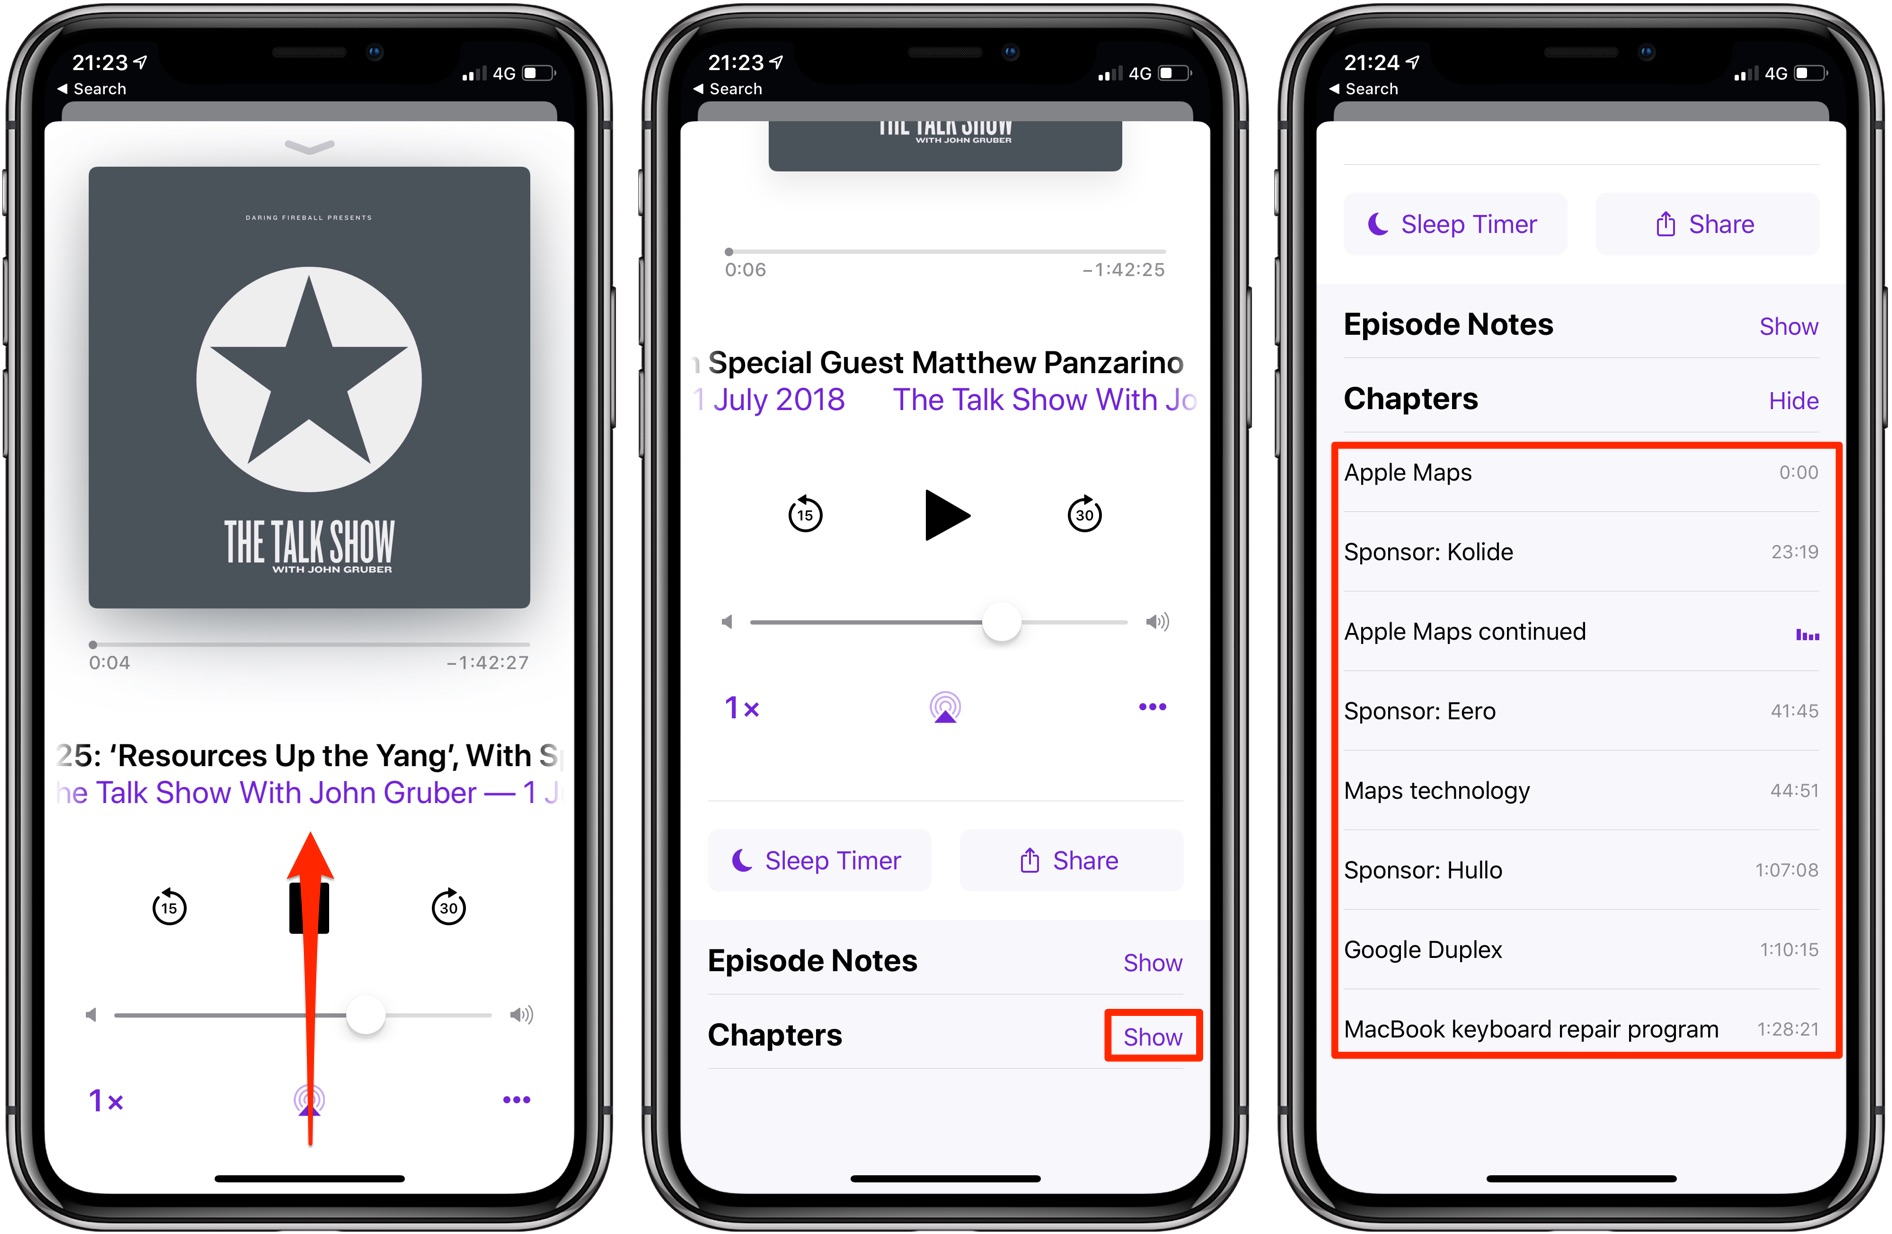 Apple Podcasts chapters - A screenshot showing accessing the embedded chapter markers by swiping up on the Now Playing screen in the Podcasts app on iOS 12